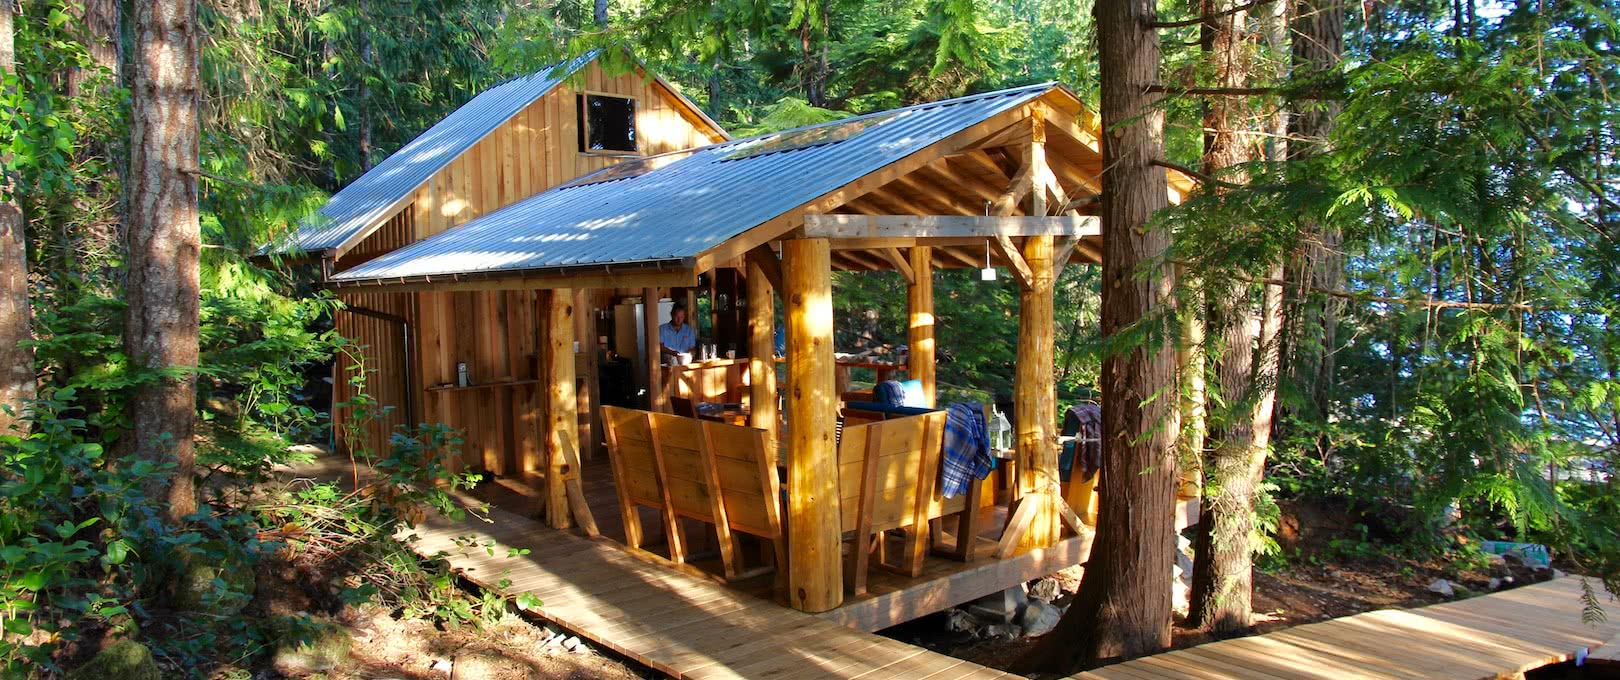 The handcrafted Cabana Cafe with nestled in the BC rainforest in Desolation Sound